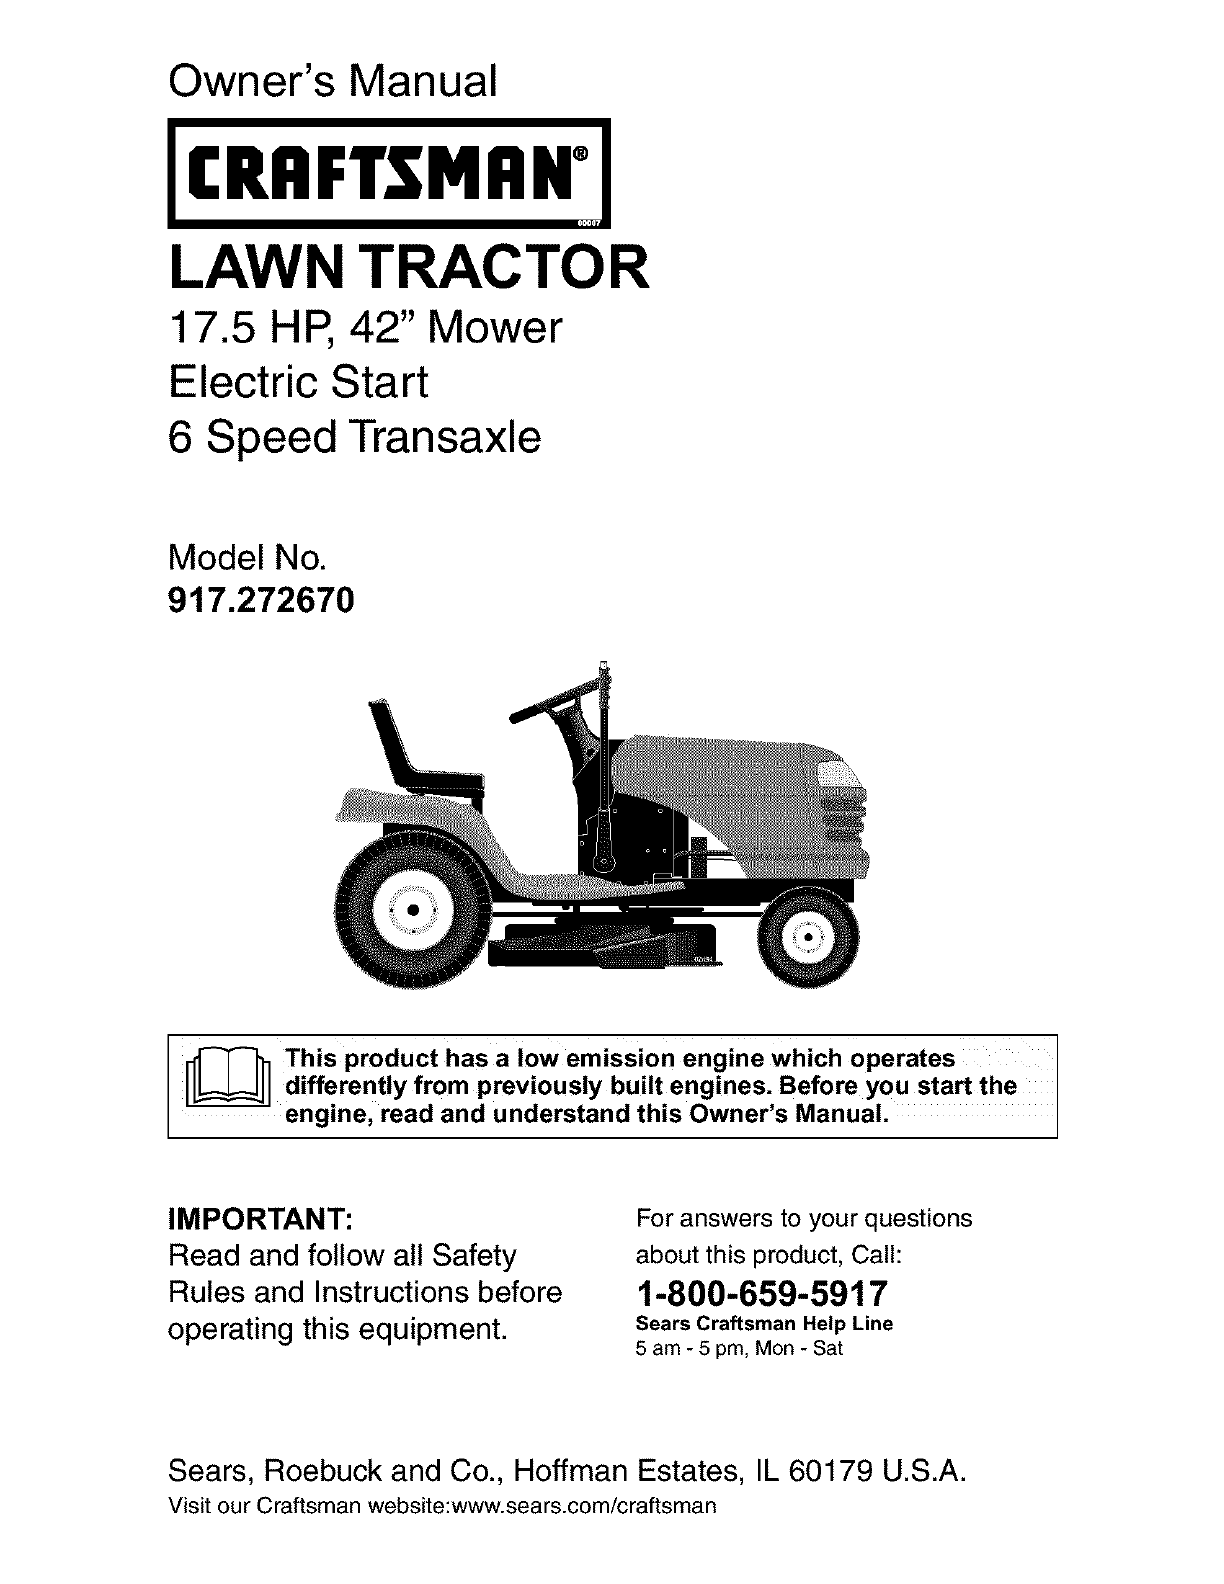 96bba514 d0cb 430d 853f 705cdc0d7218 bg1 craftsman lawn mower 917 27267 user guide manualsonline com craftsman lt4000 wiring diagram at crackthecode.co